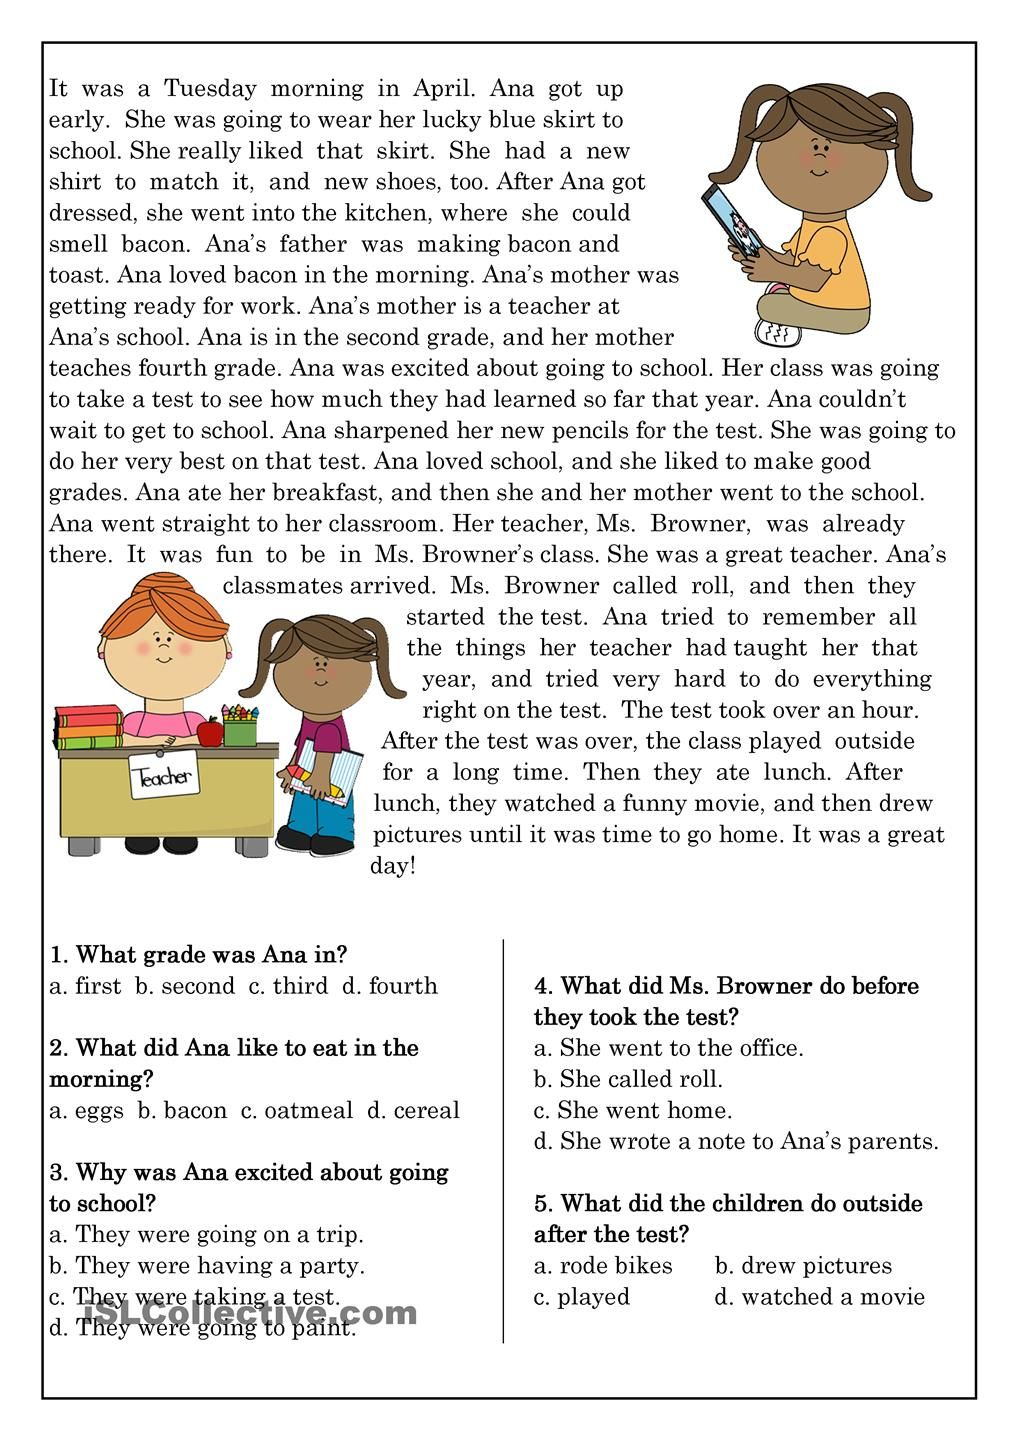 Reading Comprehension for beginner and Elementary Students 10 ...